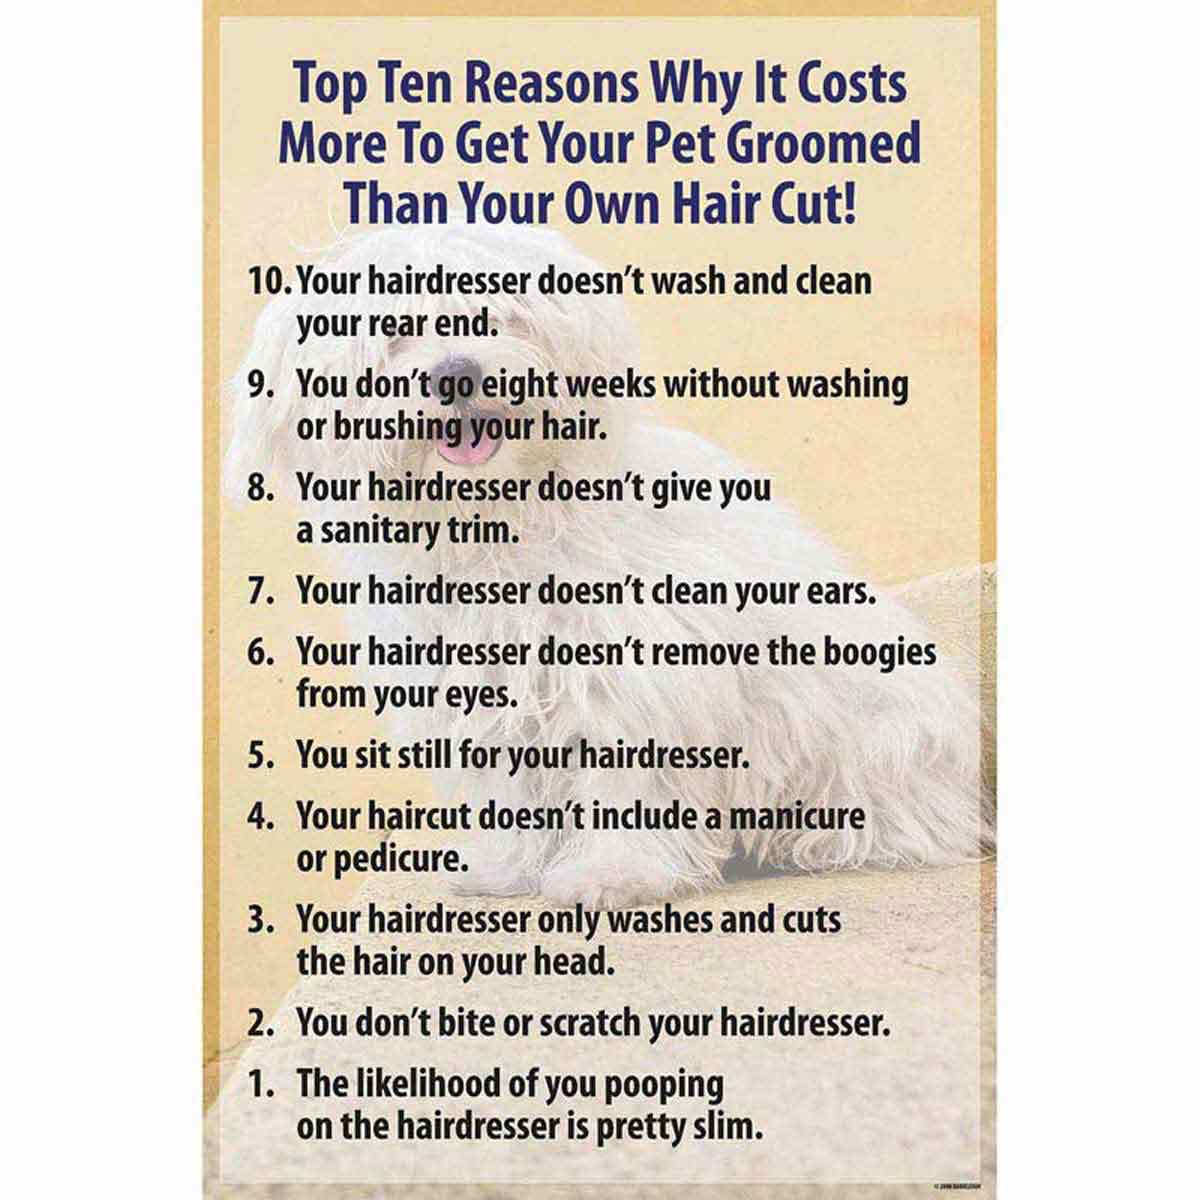 Professional Groomer Top 10 Reasons Why it Costs More To Get Your Pet Groomed Than Your Own Hair Cut Poster and Frame 8.5 x 11